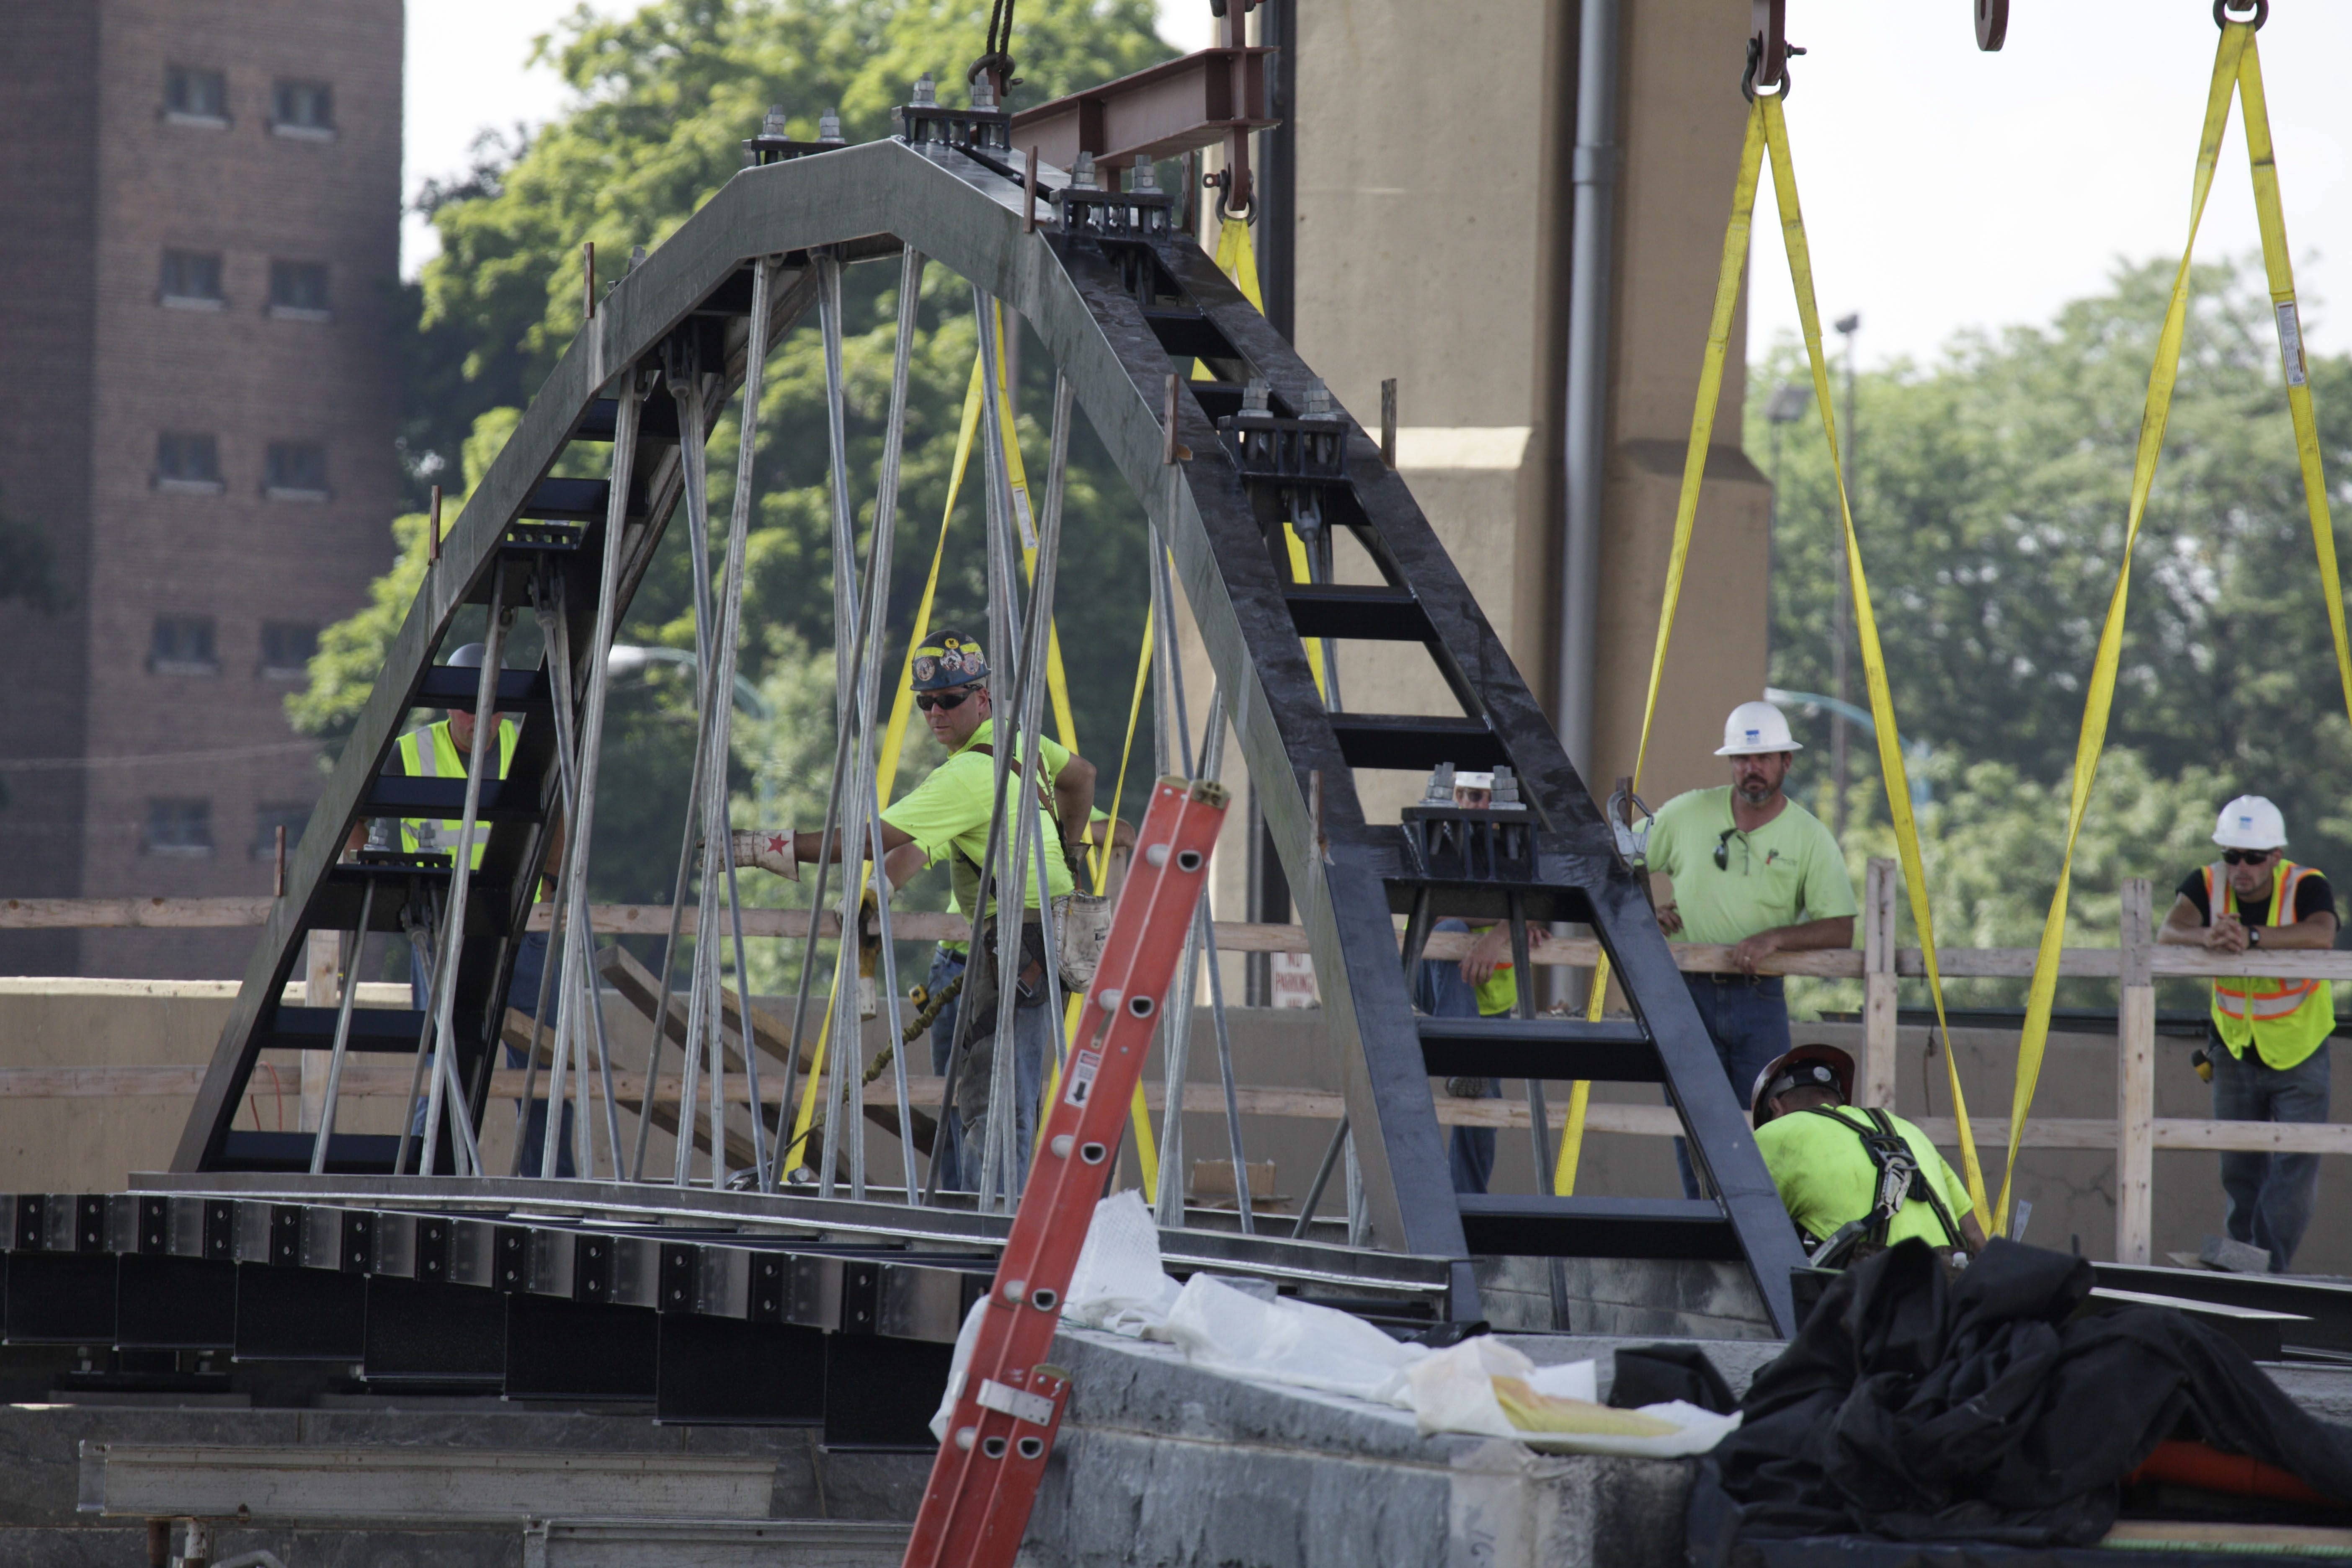 Workers position a Whipple truss bridge Monday over the historically aligned canal at Canalside. The bridge is similar to the one at the nearby Commercial Slip.